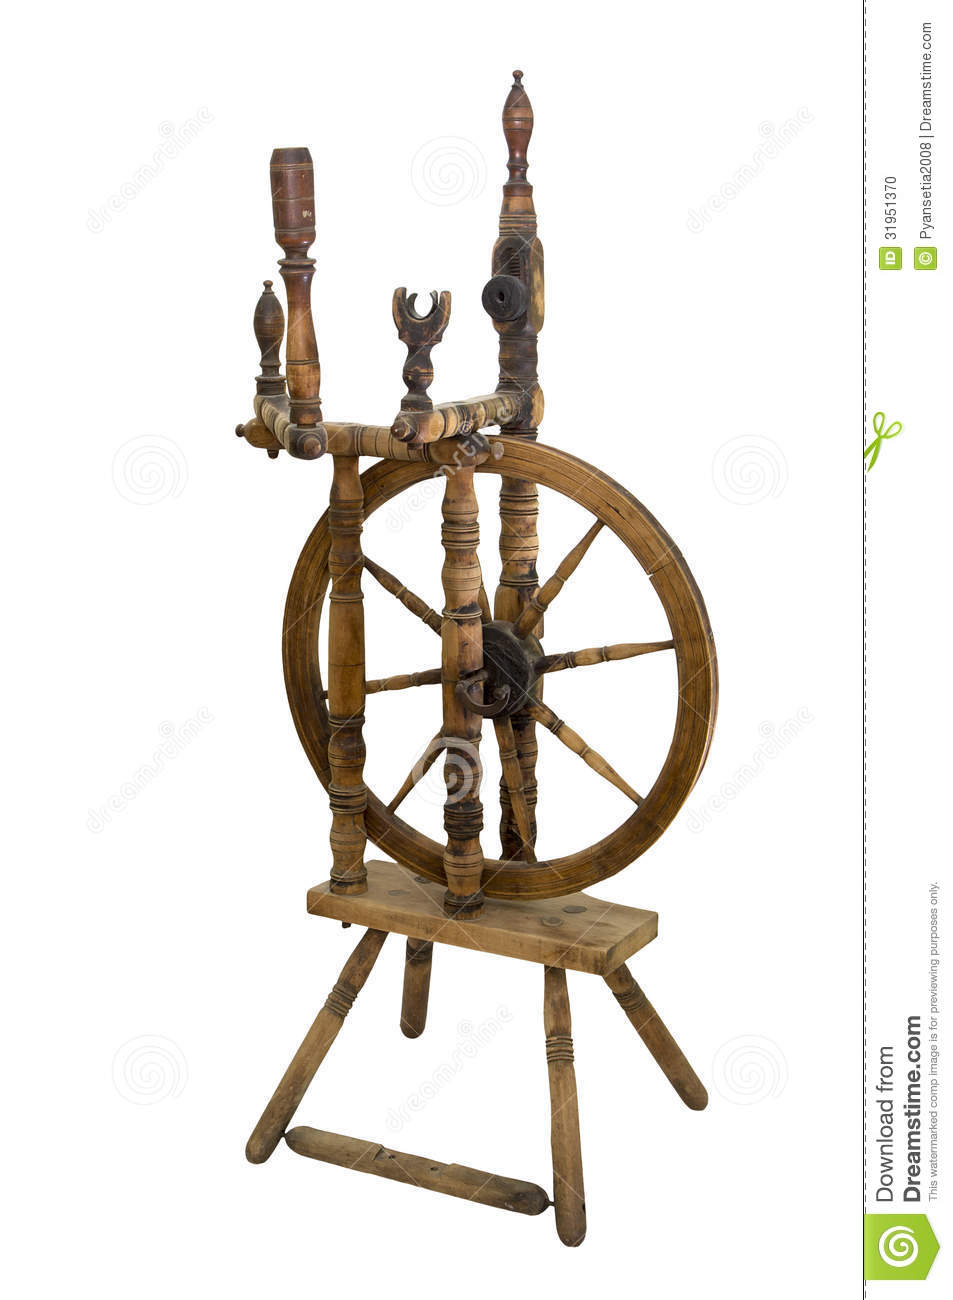 Symbols sjsathena a spindle for wool and flax the aegis which is the shield that athena put medusas head on to turn her enemies to stone and an owl a symbol for wisdom biocorpaavc Images